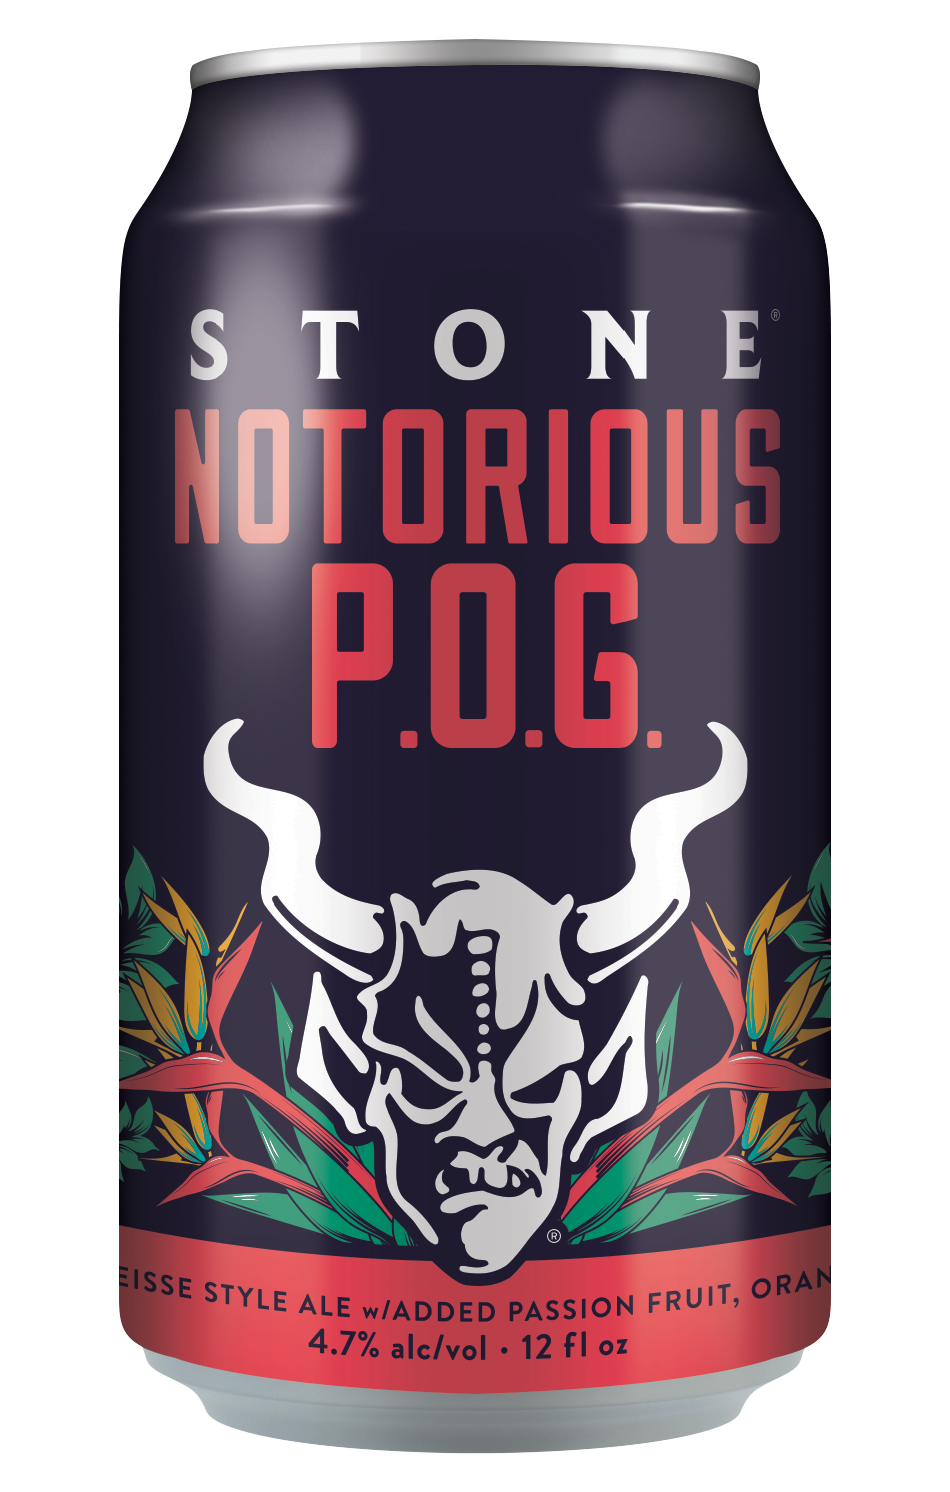 Stone Brewing announces the national release of Notorious